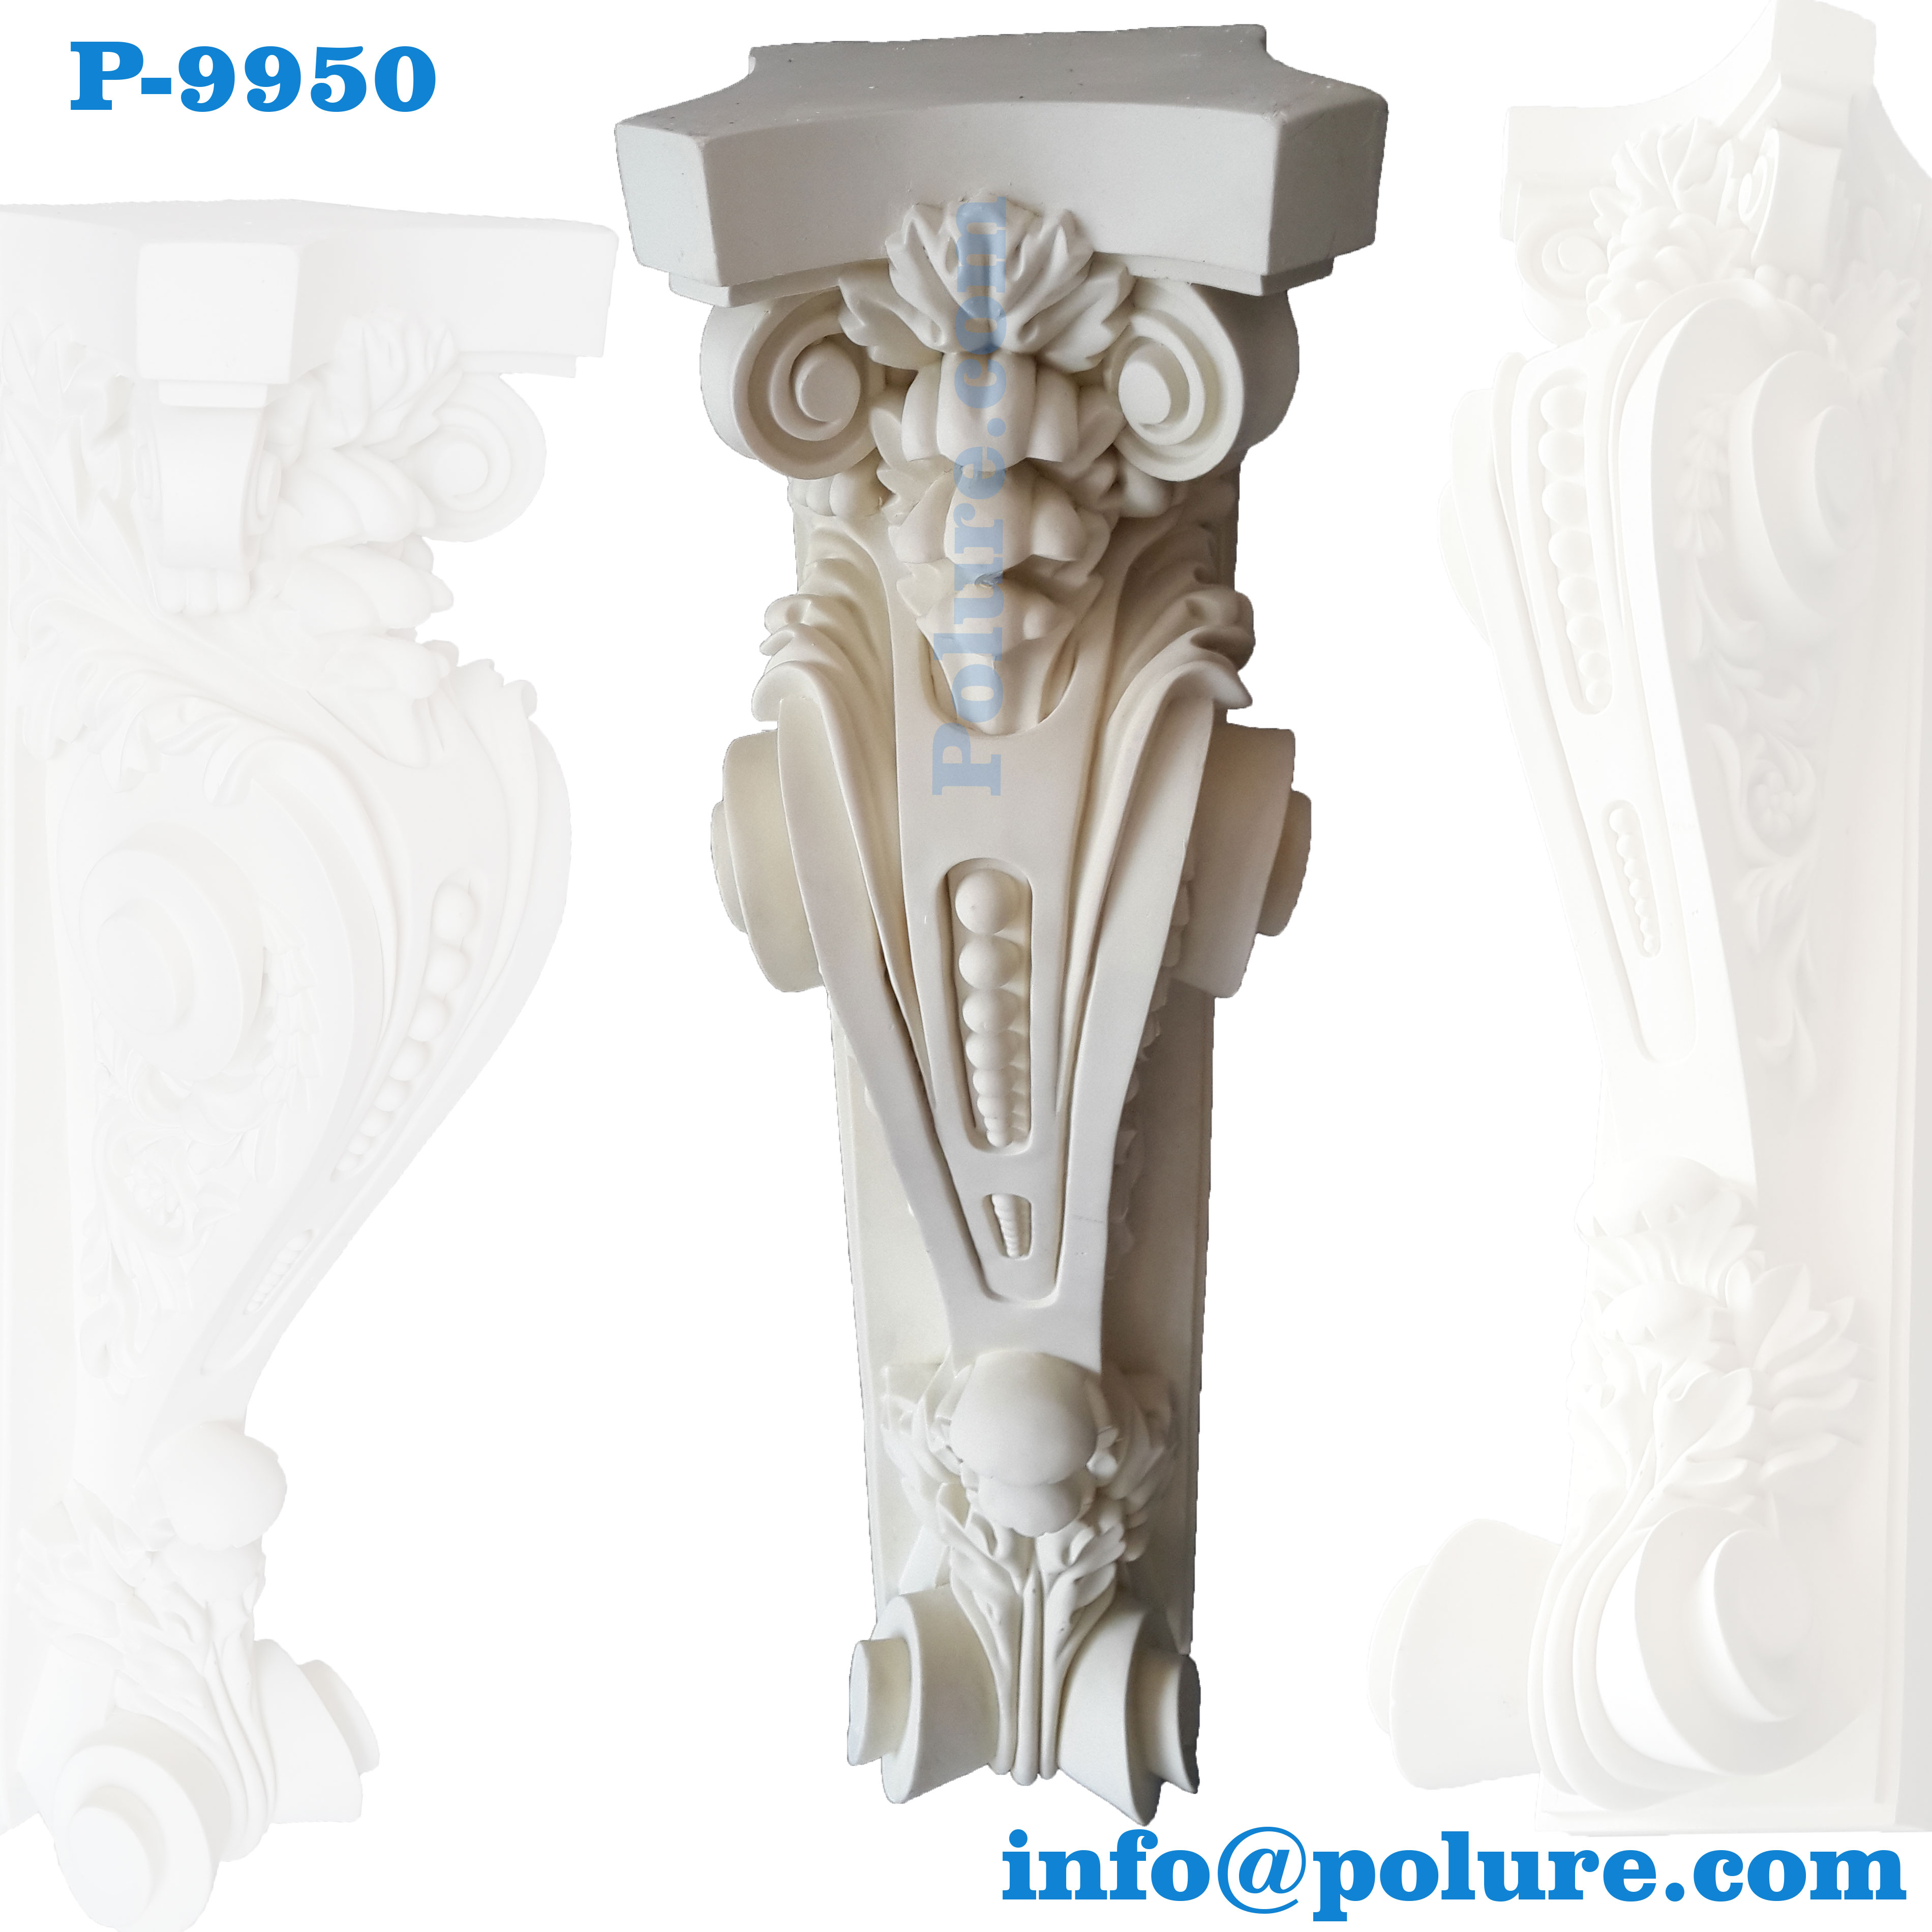 P-9950-polyurethane-classic-decorative-corbel-moulding-interior-exterior-decoration-pu (4)